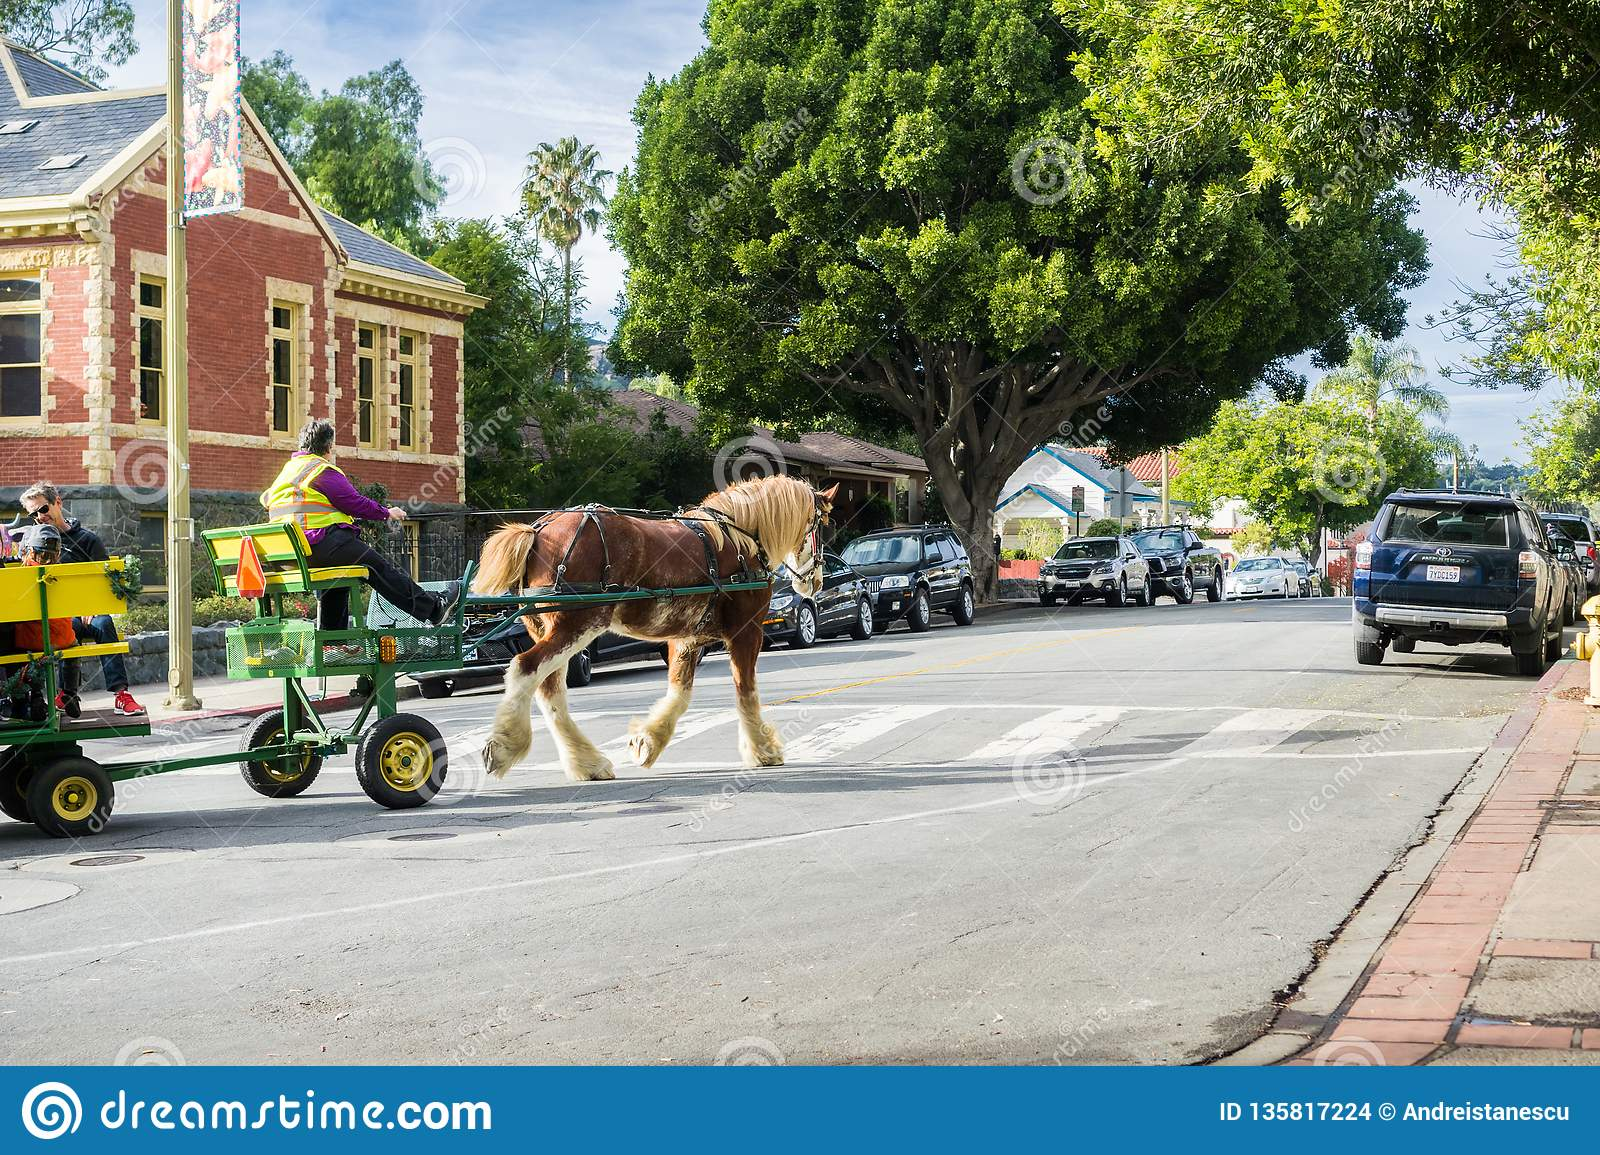 December 24, 2017 San Luis Obispo / CA / USA - Horse-drawn carriage taking people for a tour around the historical part of the